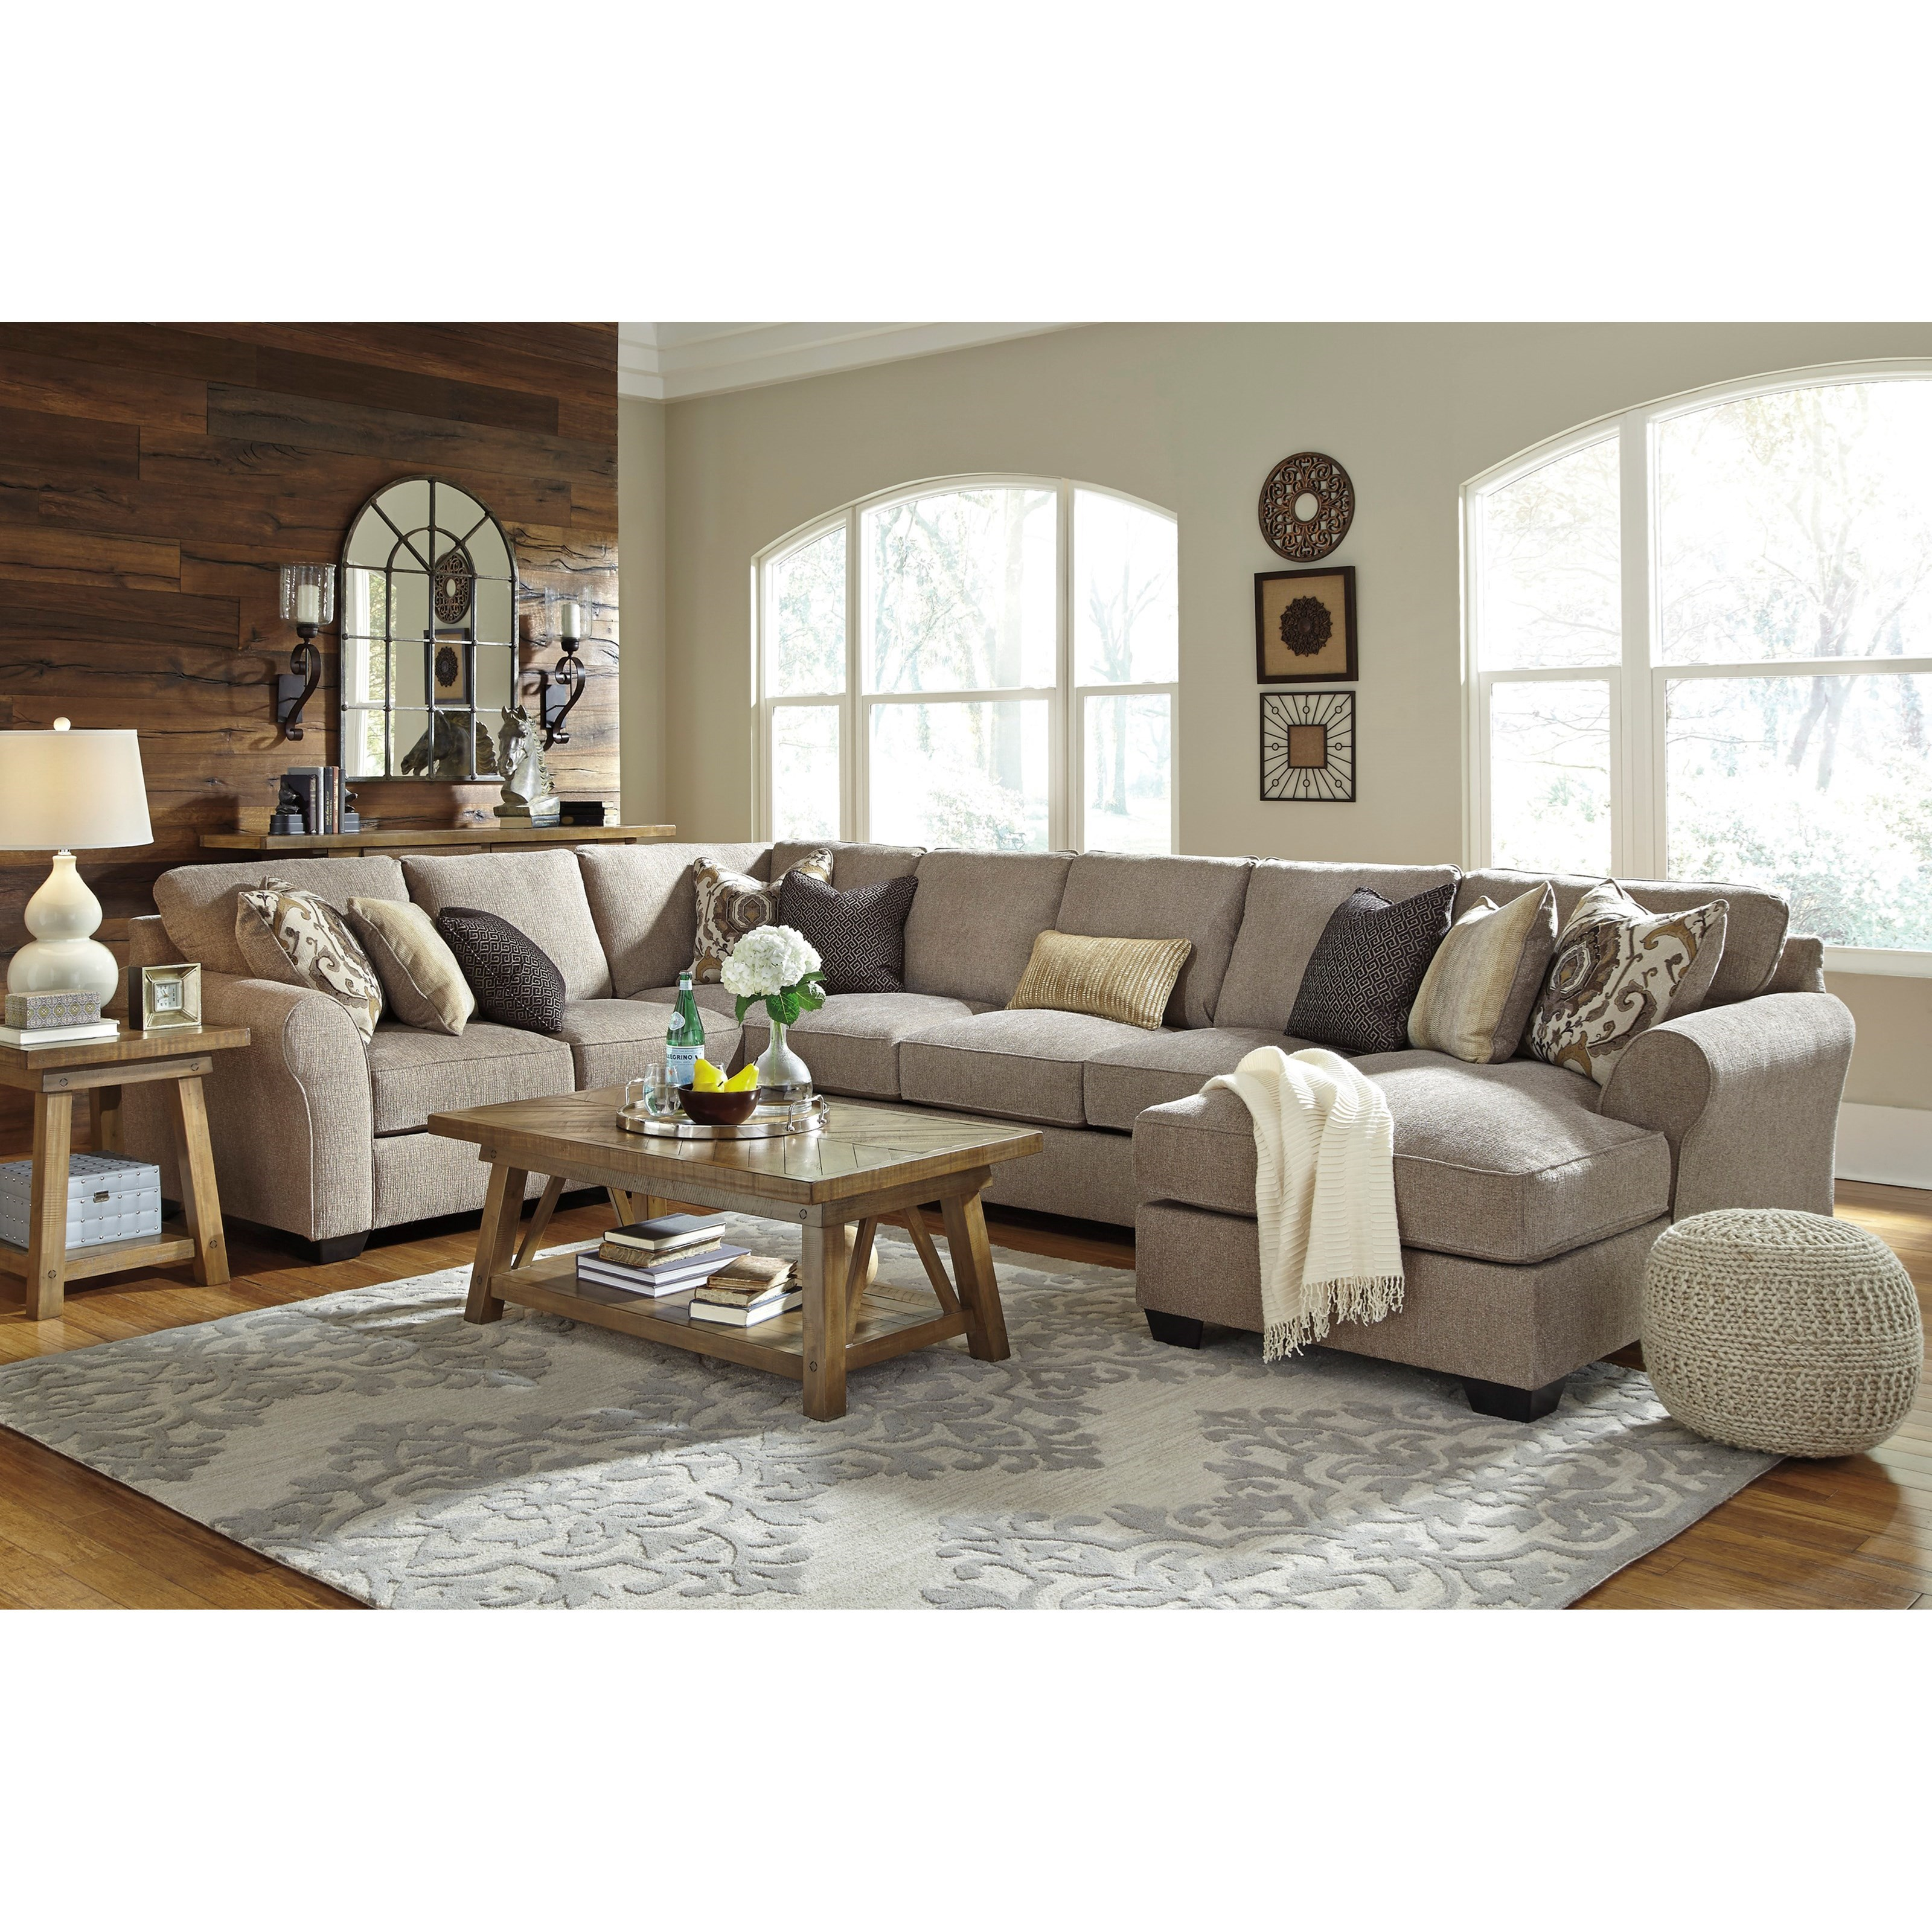 Benchcraft pantomine 4 piece sectional with right chaise for Benchcraft chaise lounge